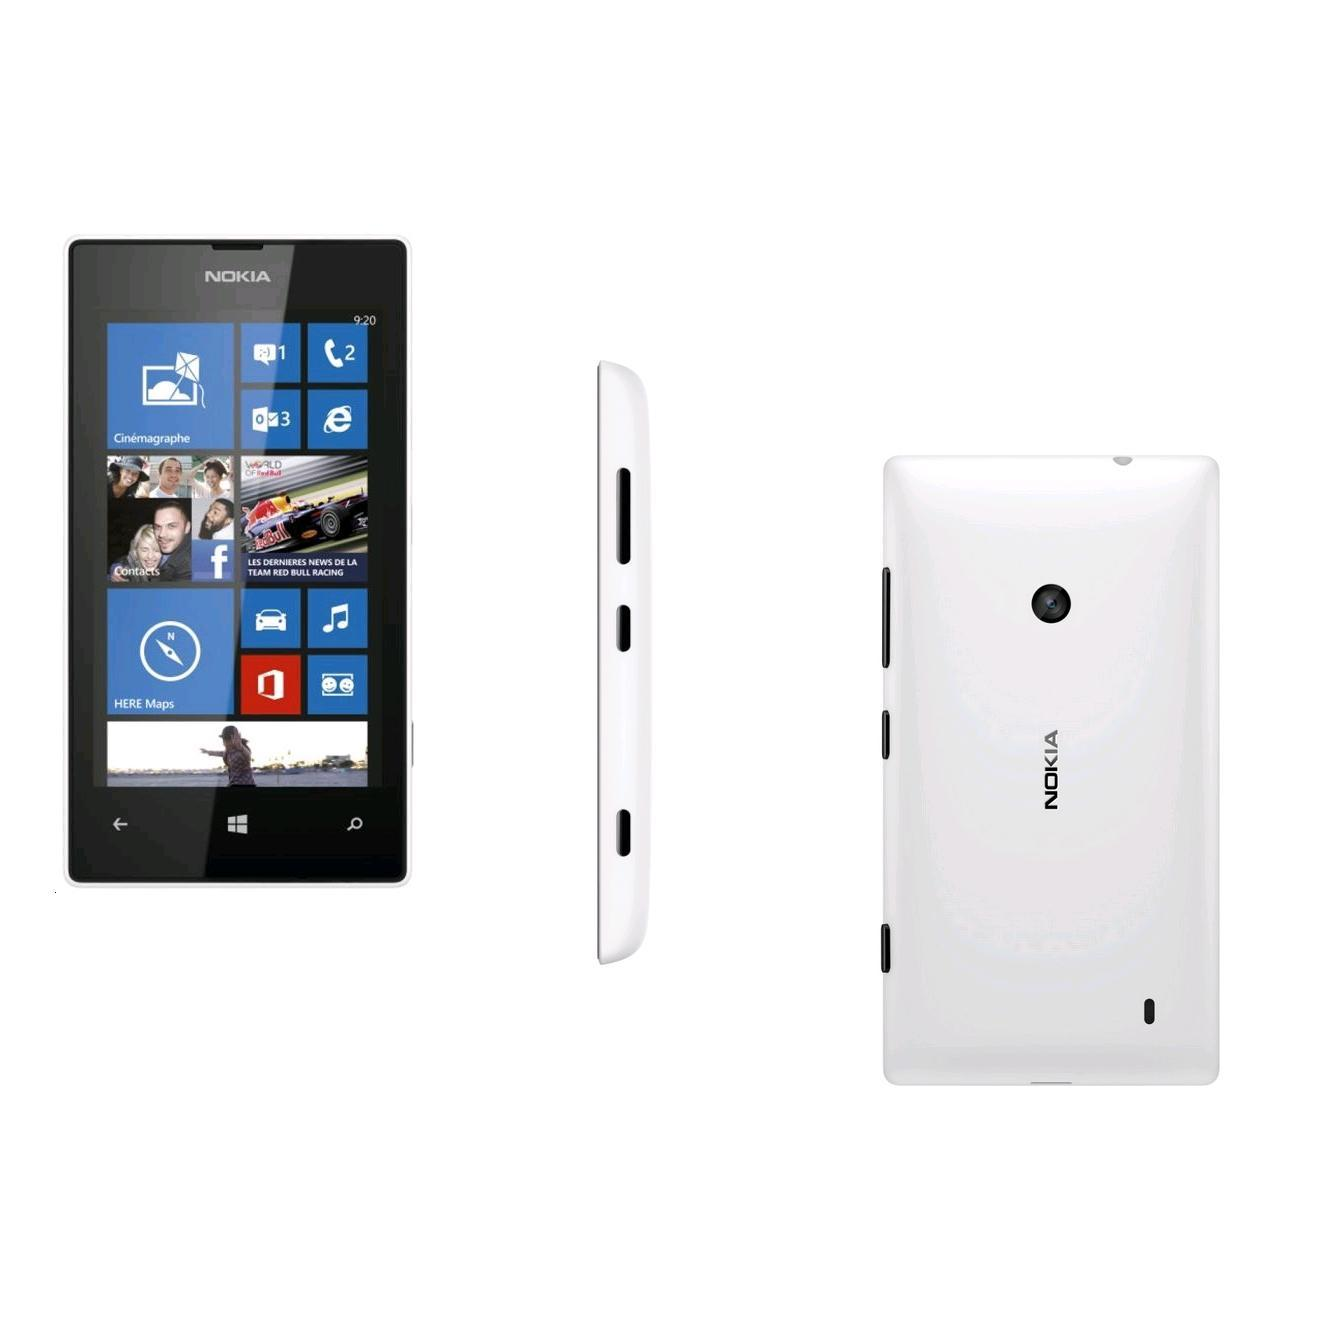 Nokia Lumia 520 8 Gb - Blanco - Libre